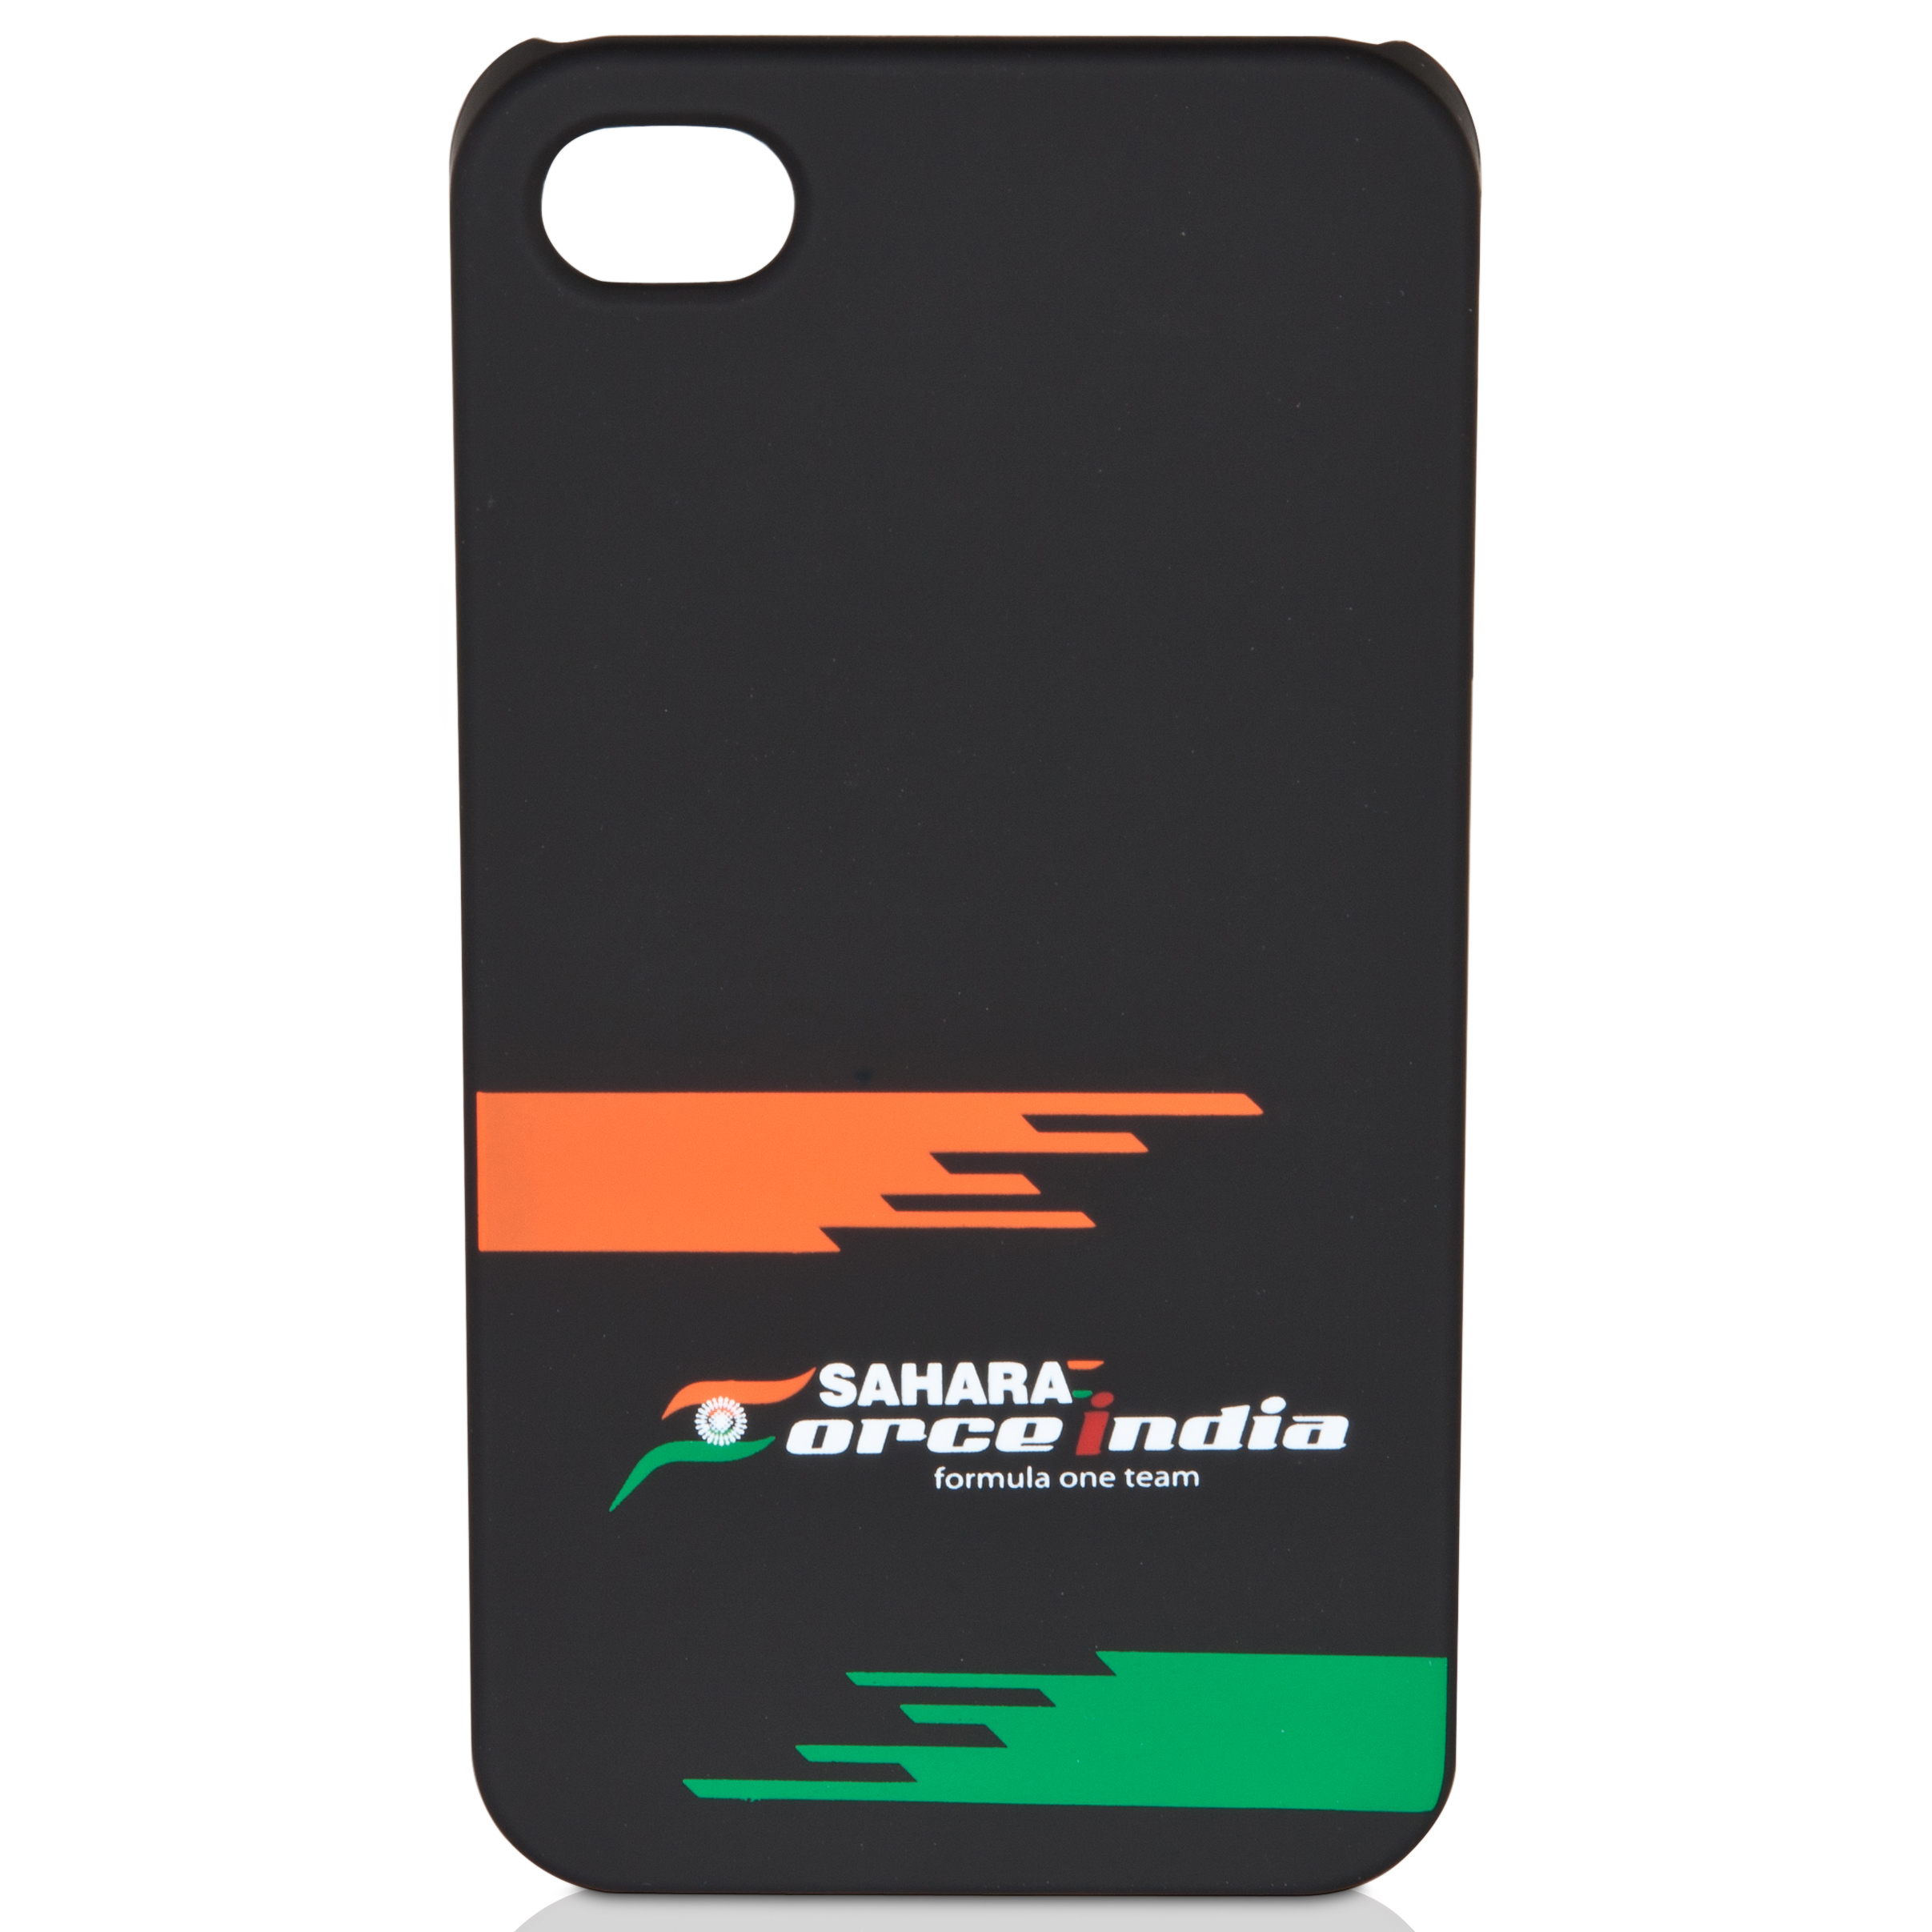 Sahara Force India iPhone 4 and 4S Cover